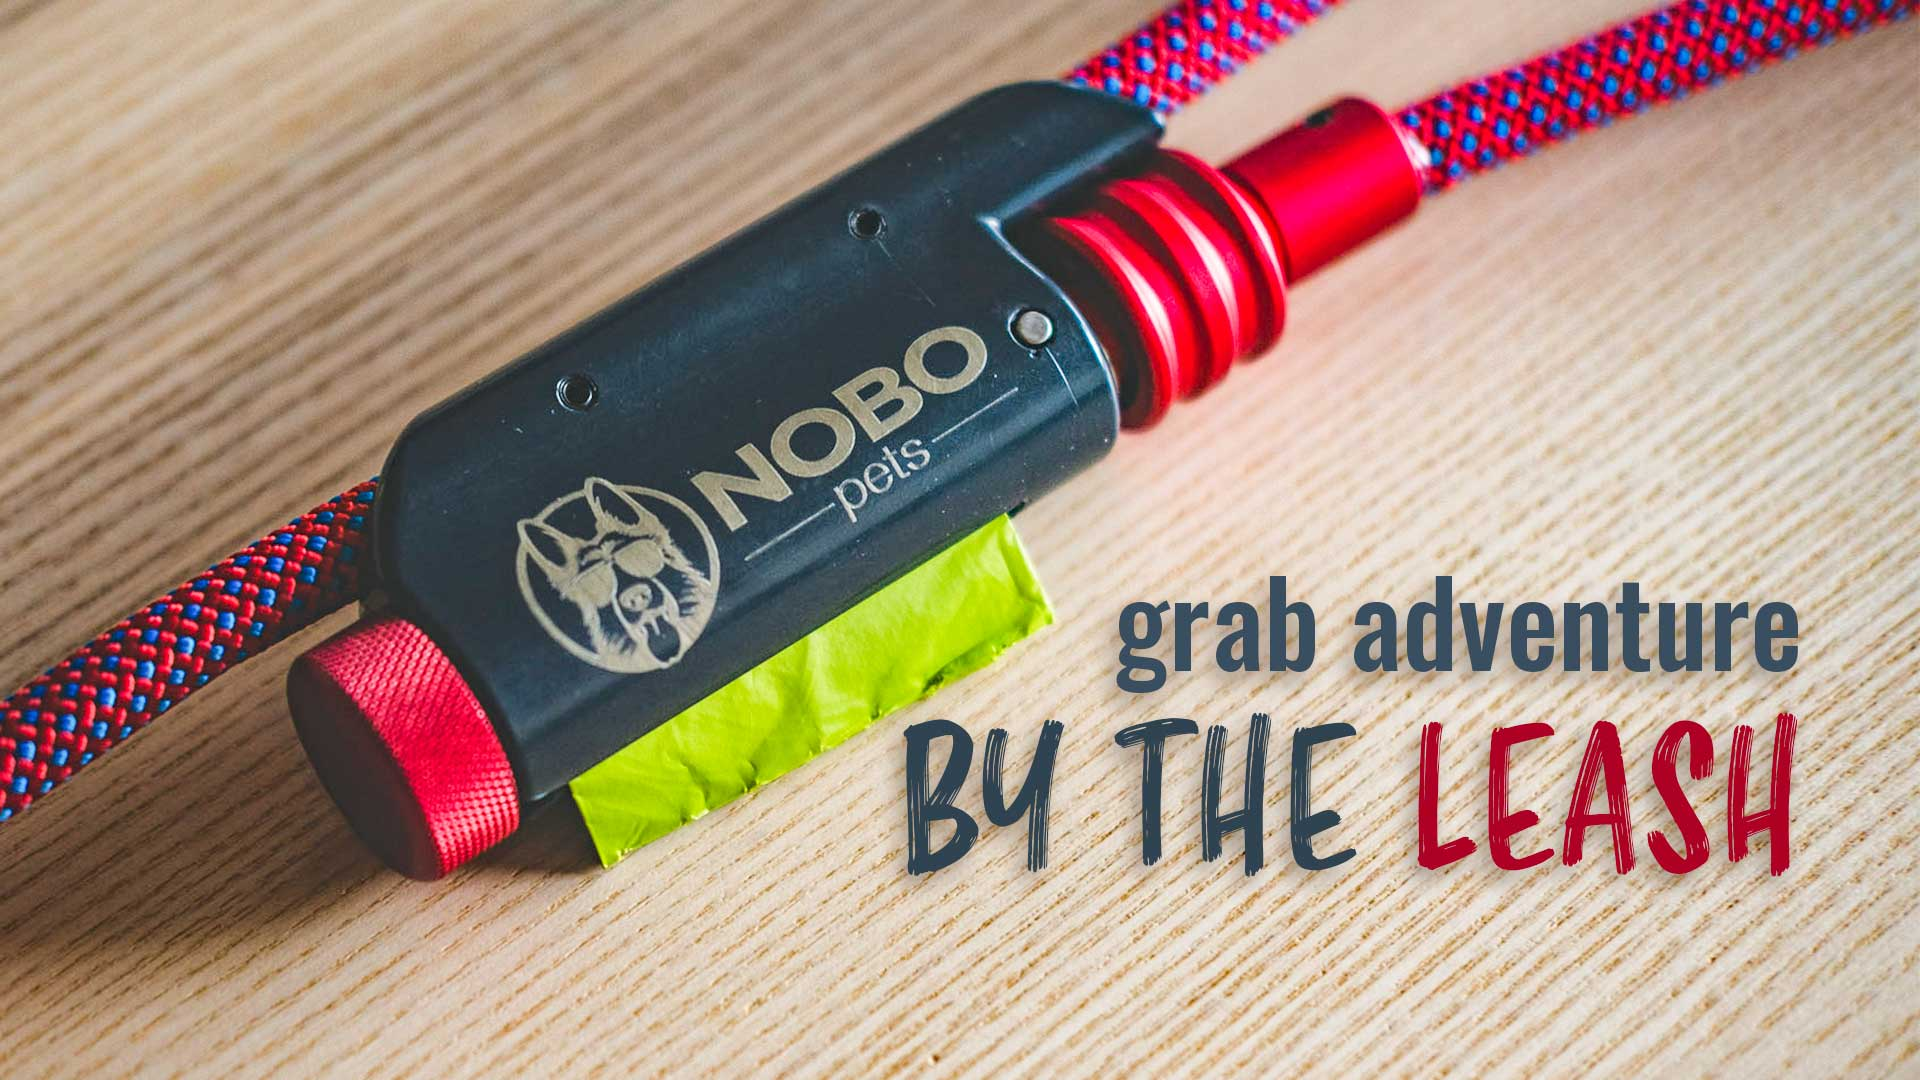 NOBO Pets | Grab Adventure by the Leash